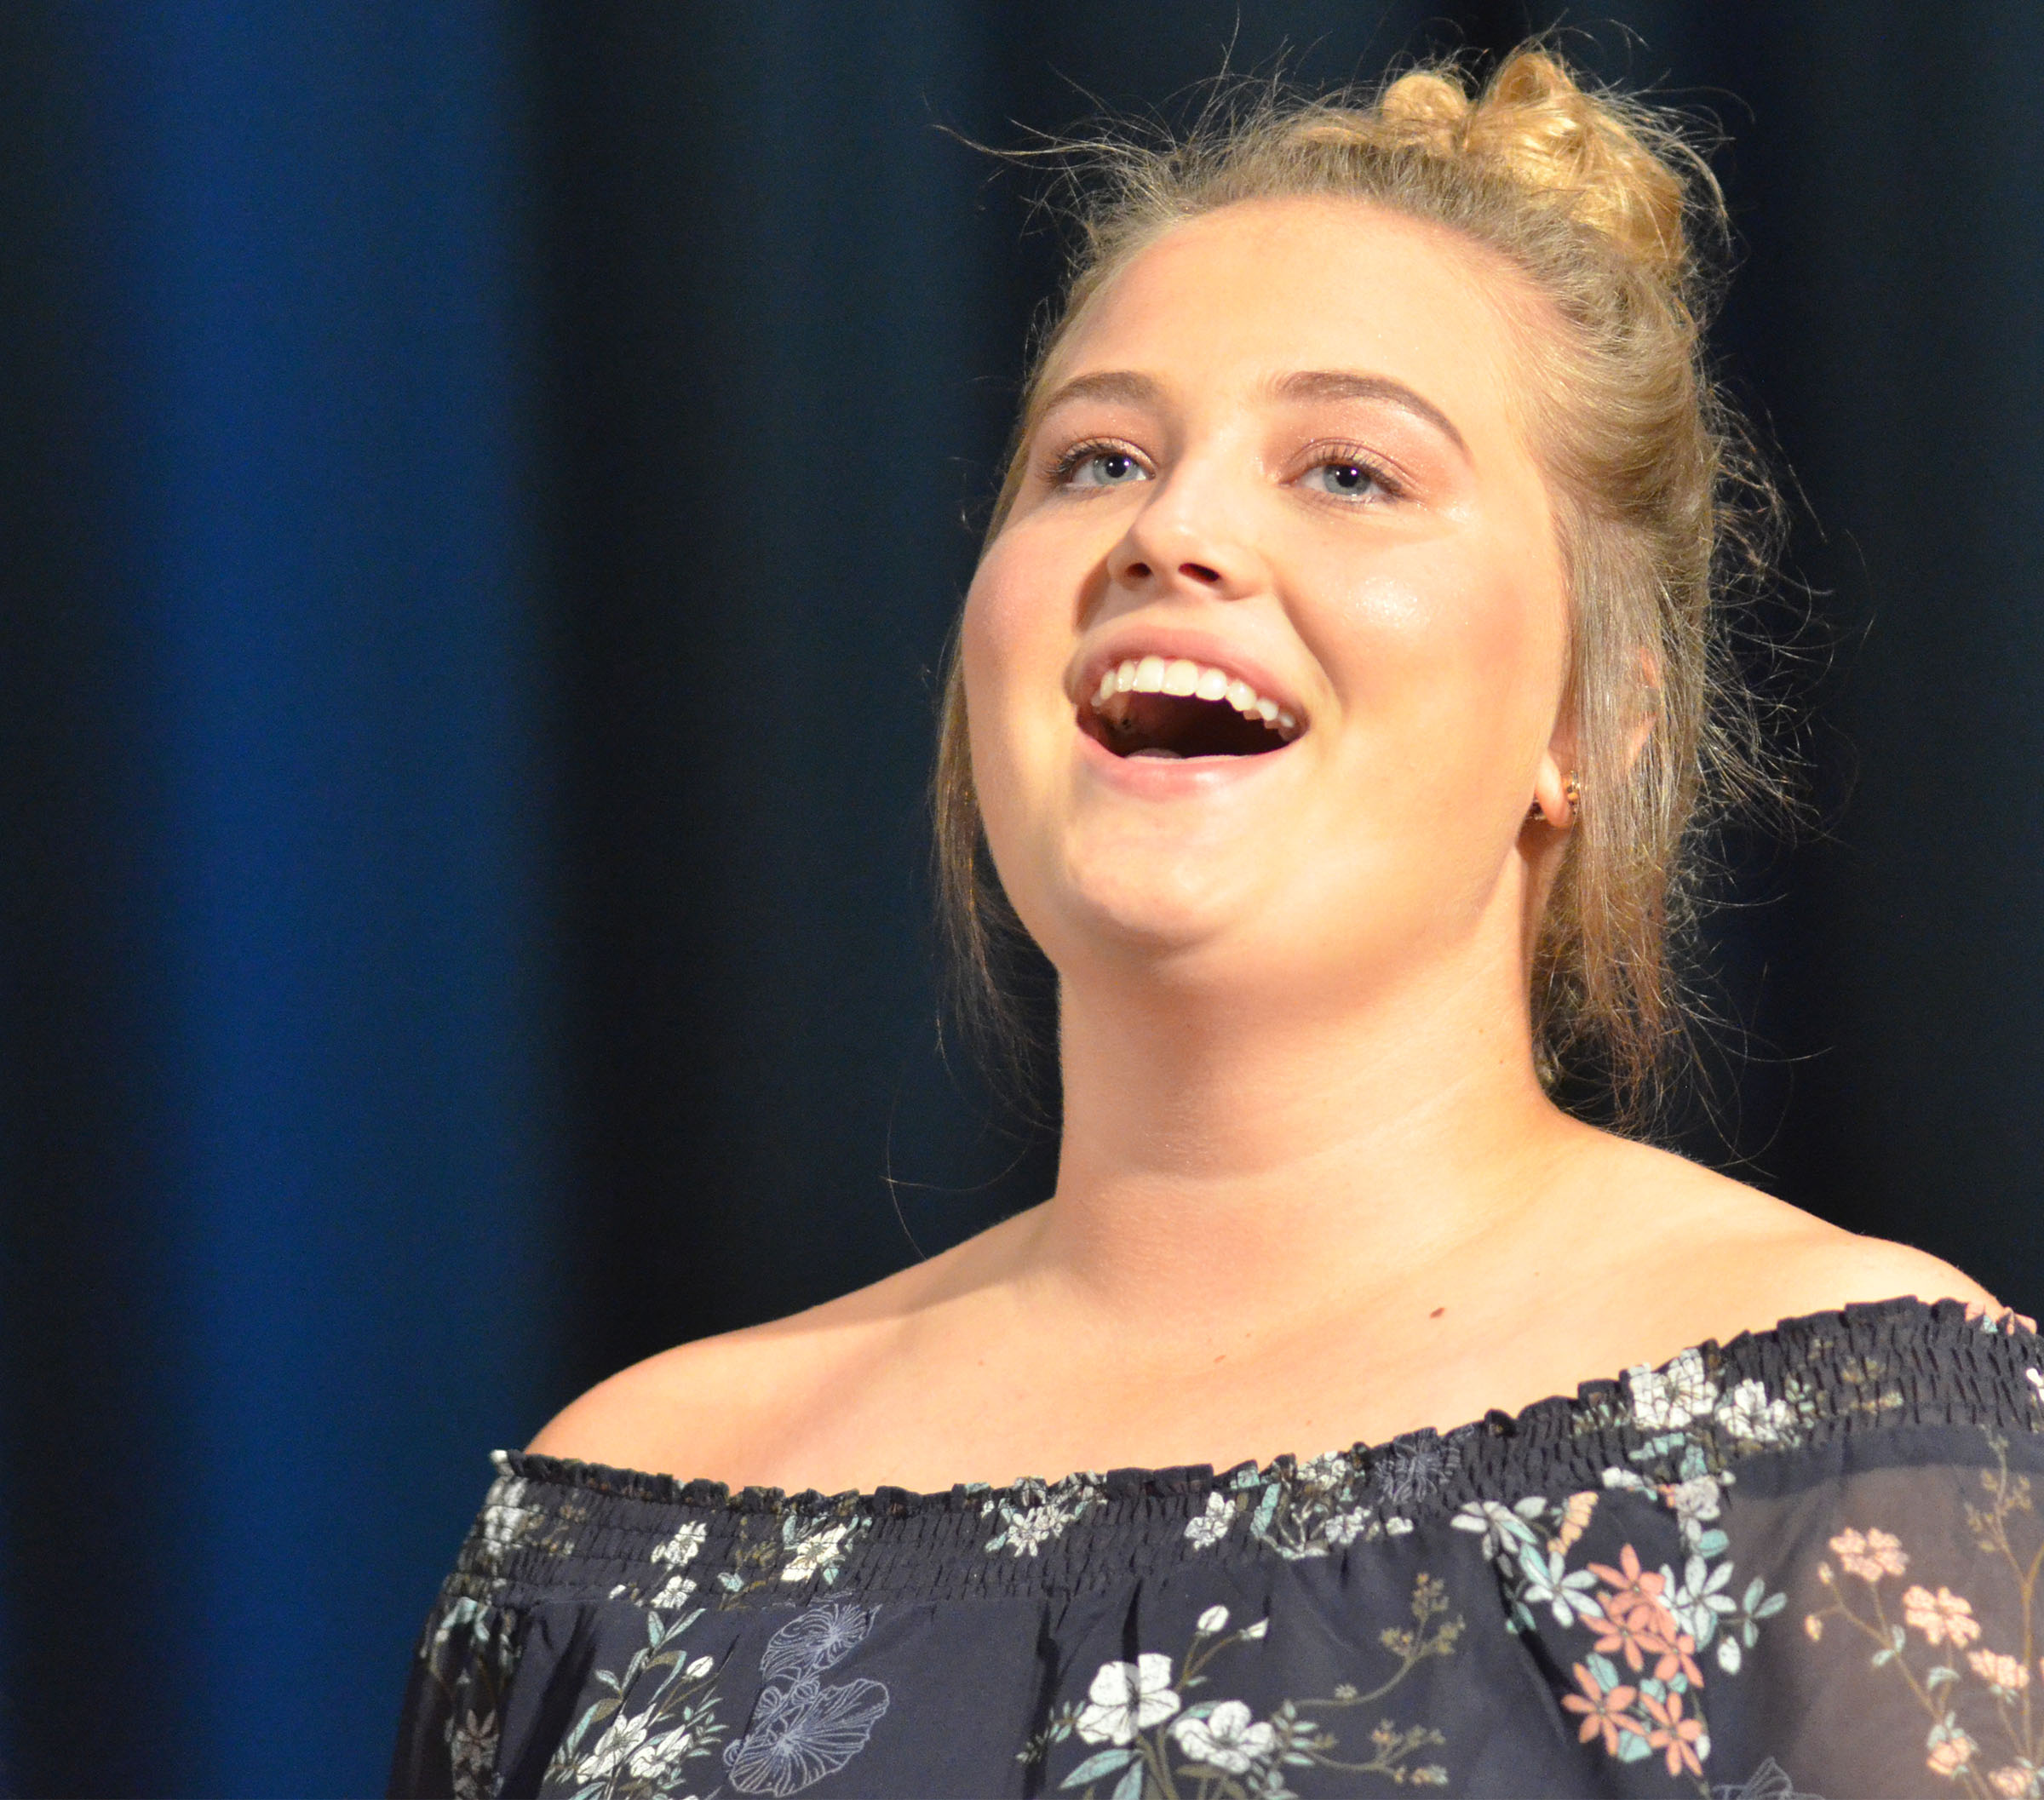 CHS senior Brenna Wethington sings.